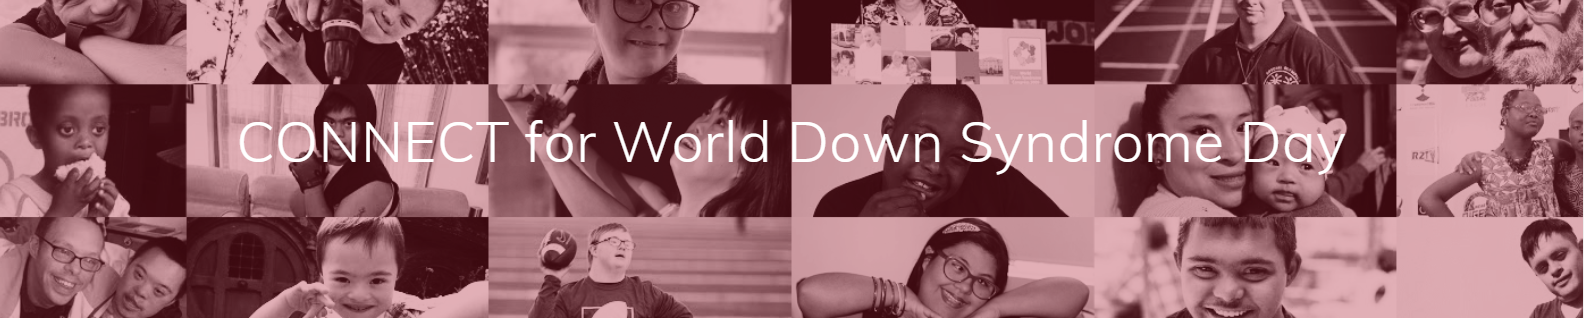 Connect for World Down Syndrome Day